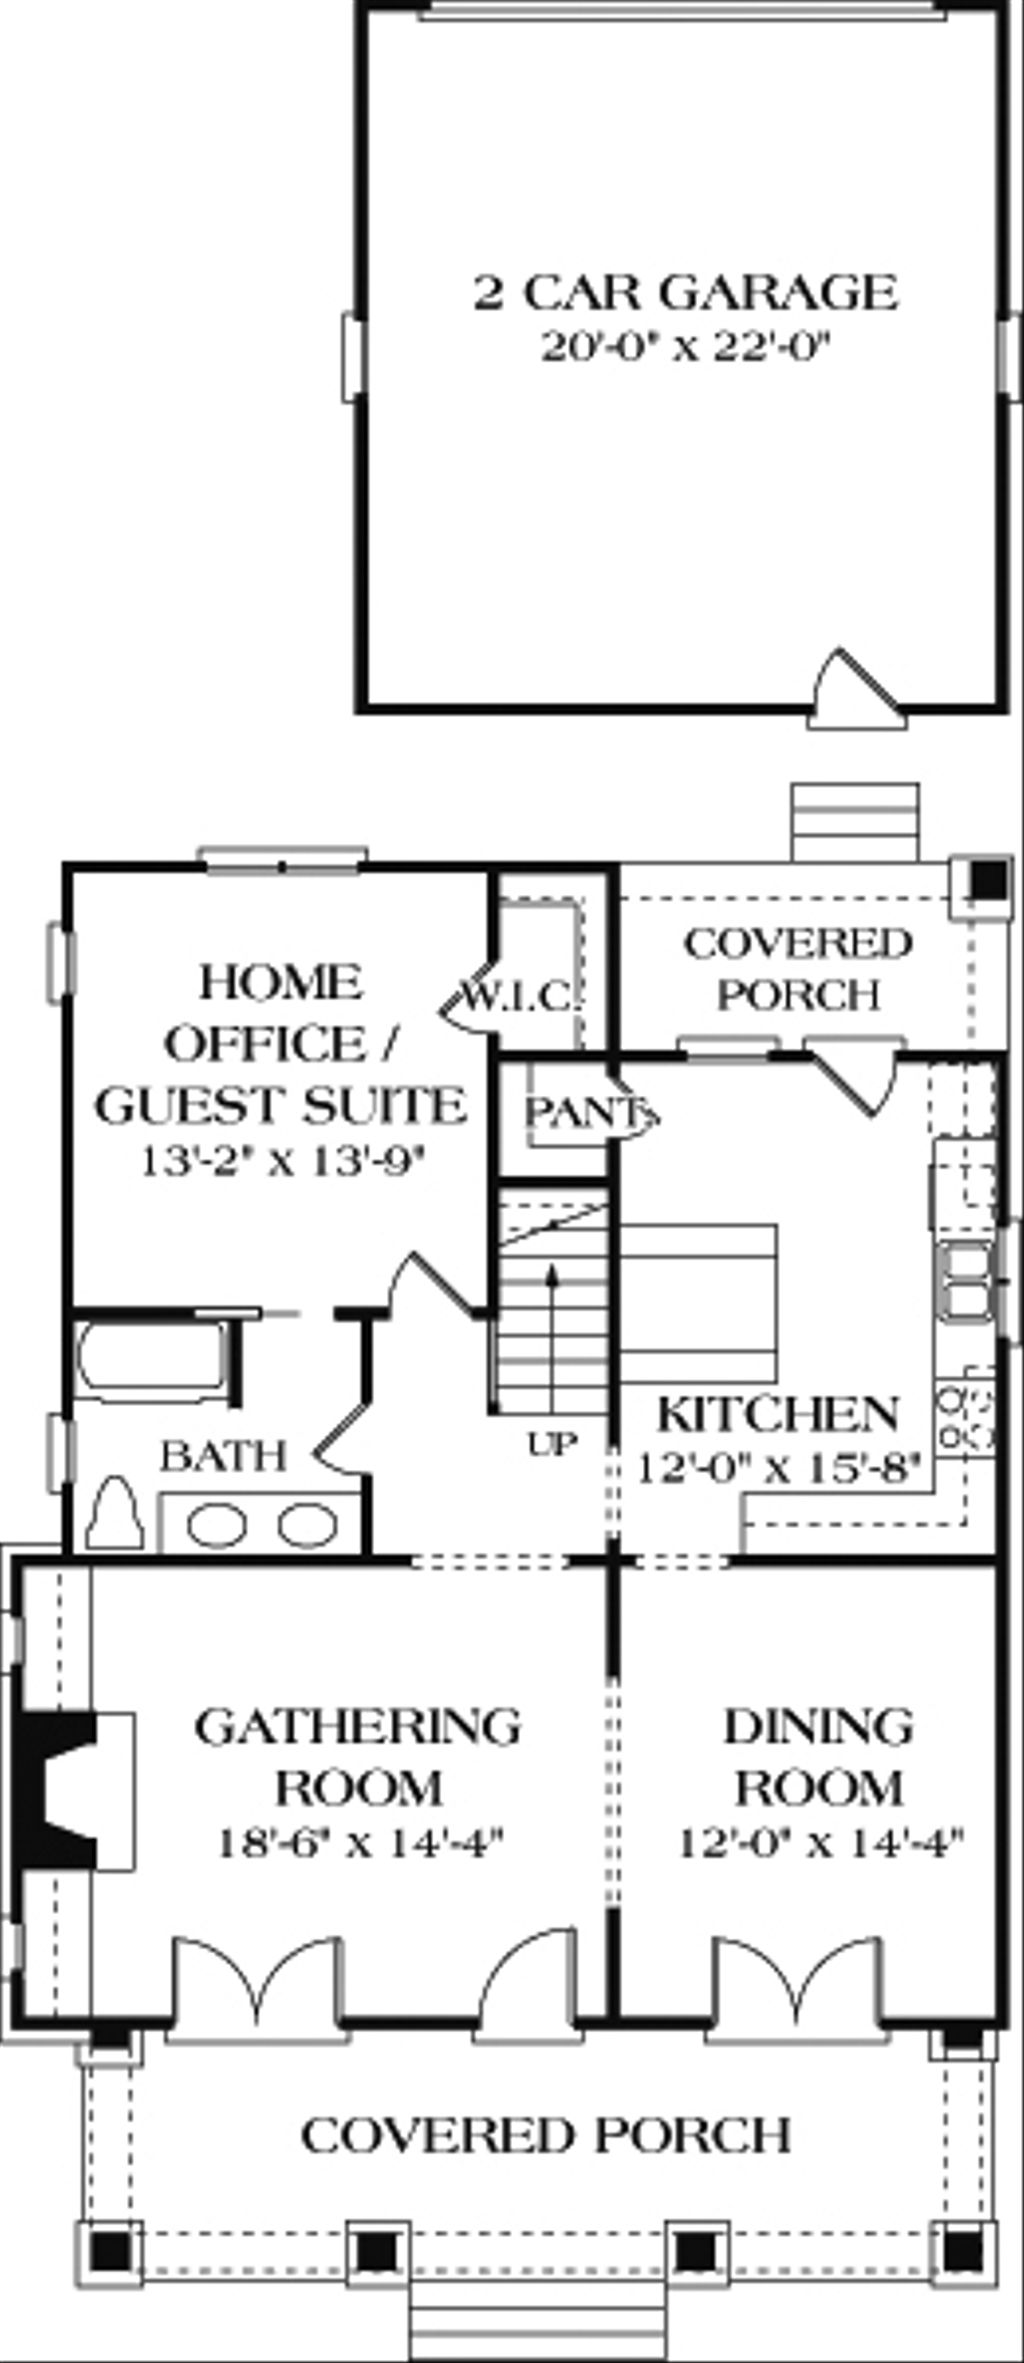 Bungalow style house plan 3 beds 3 baths 2010 sq ft plan for Www homeplans com